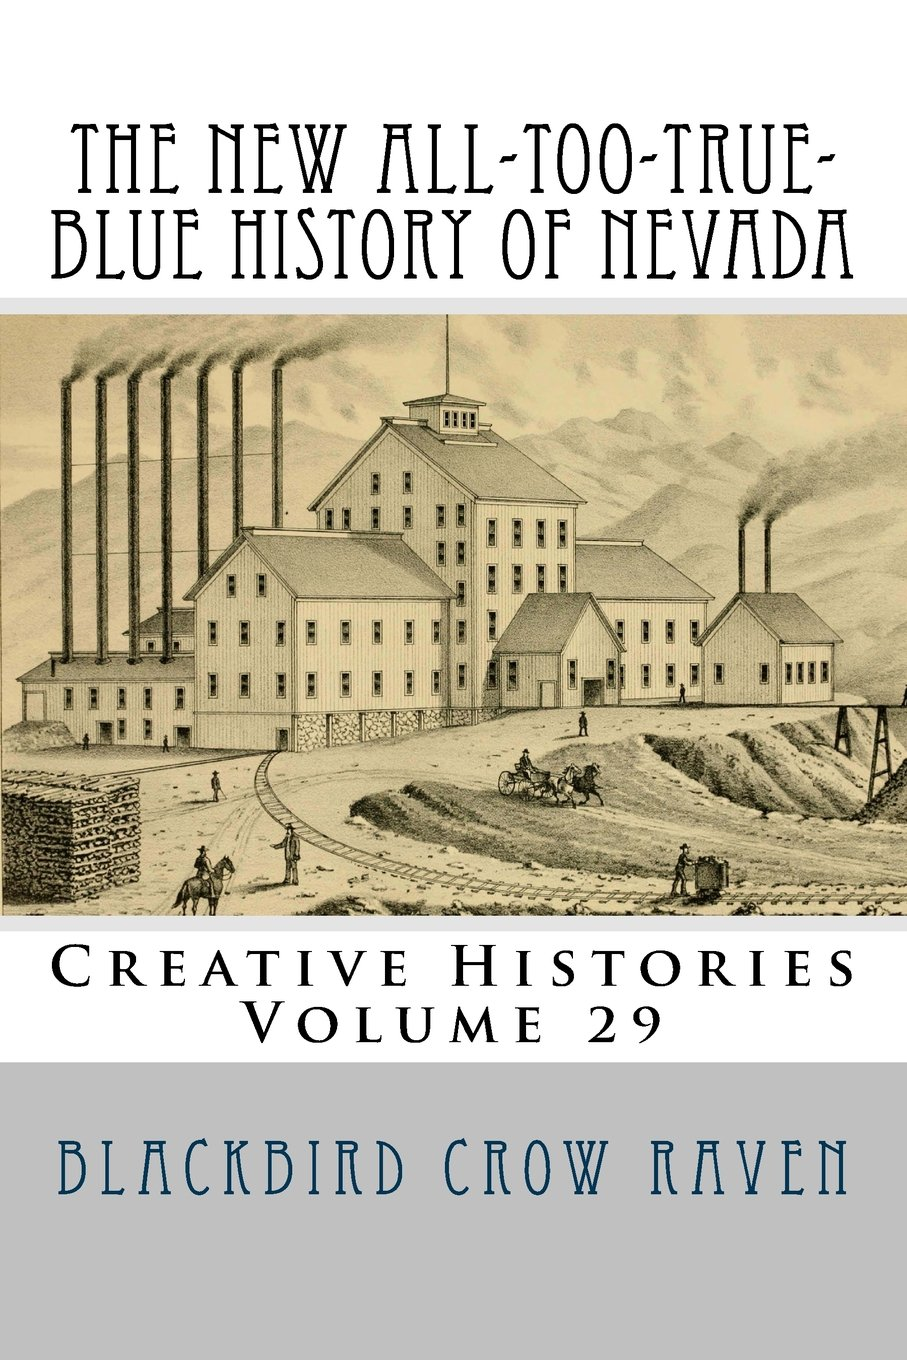 The New All-too-True-Blue History of Nevada (New All-too-True Blue Histories) (Volume 29) pdf